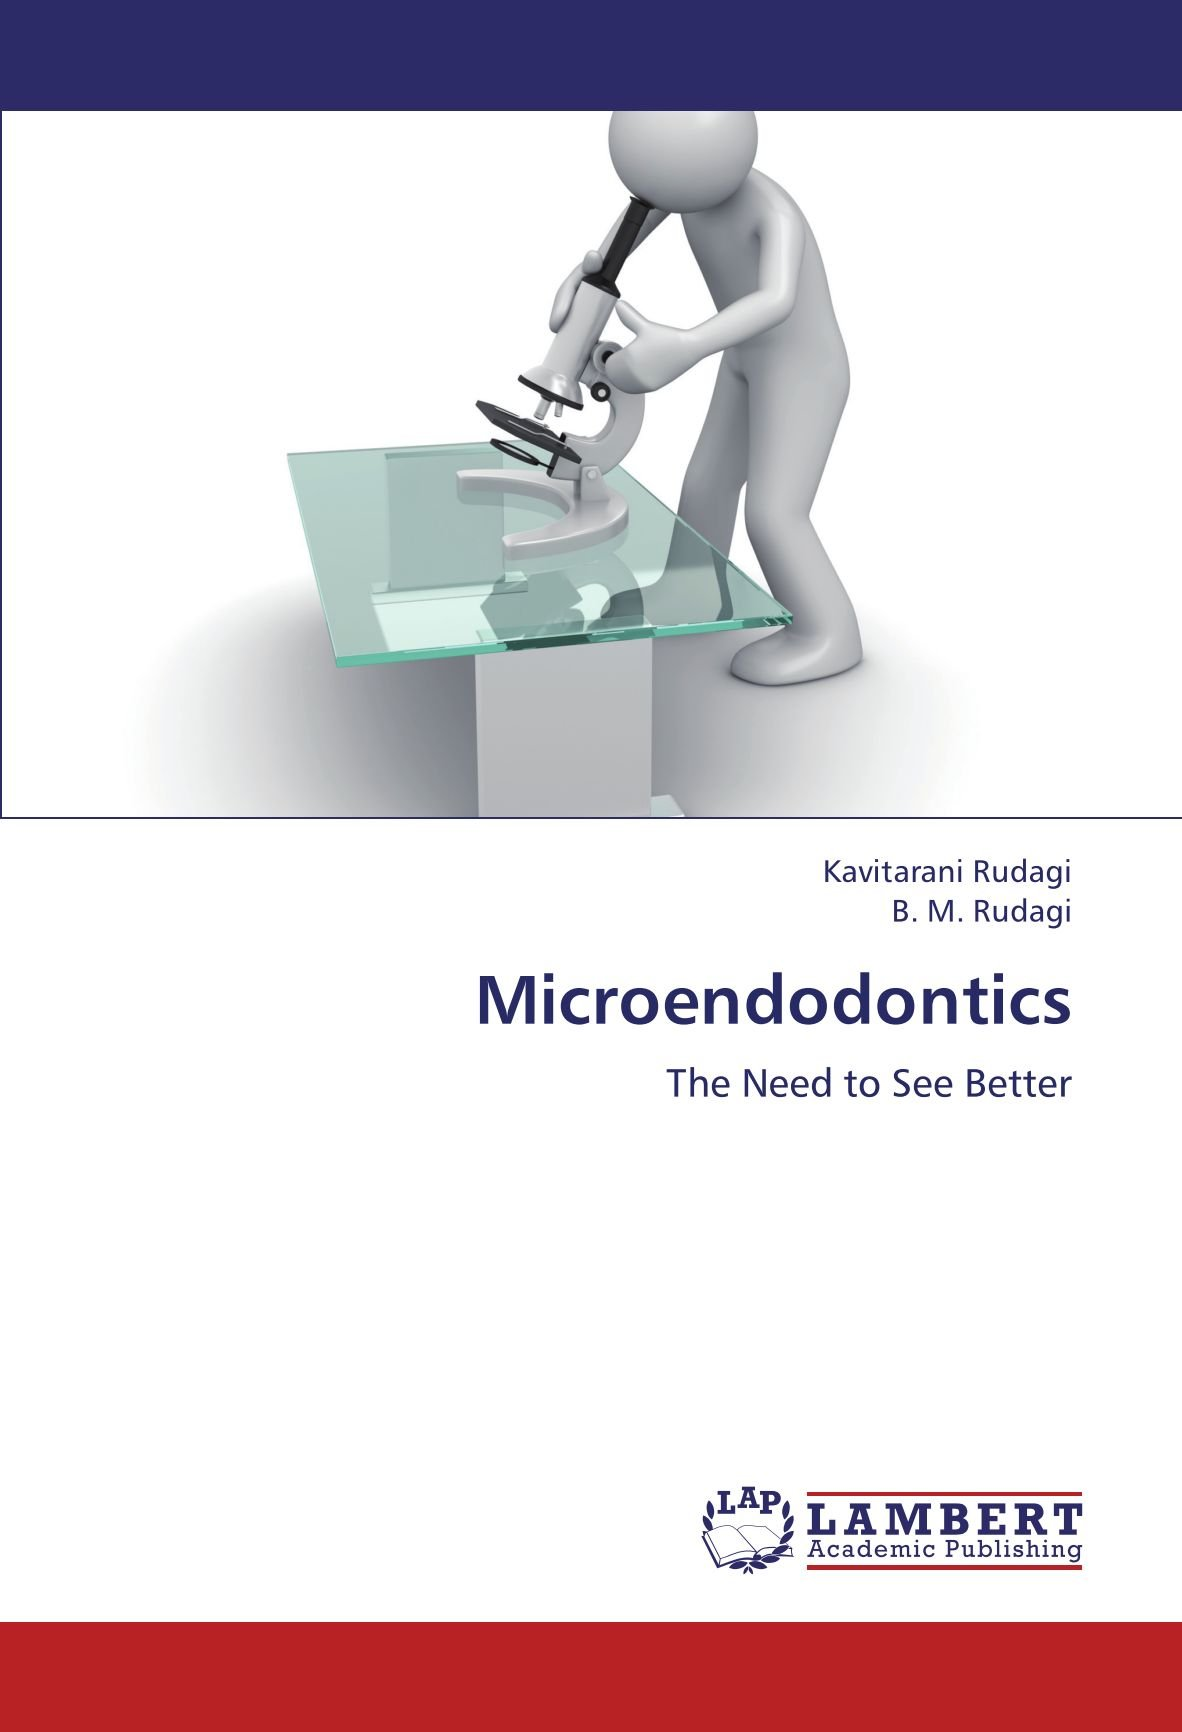 Microendodontics: The Need to See Better